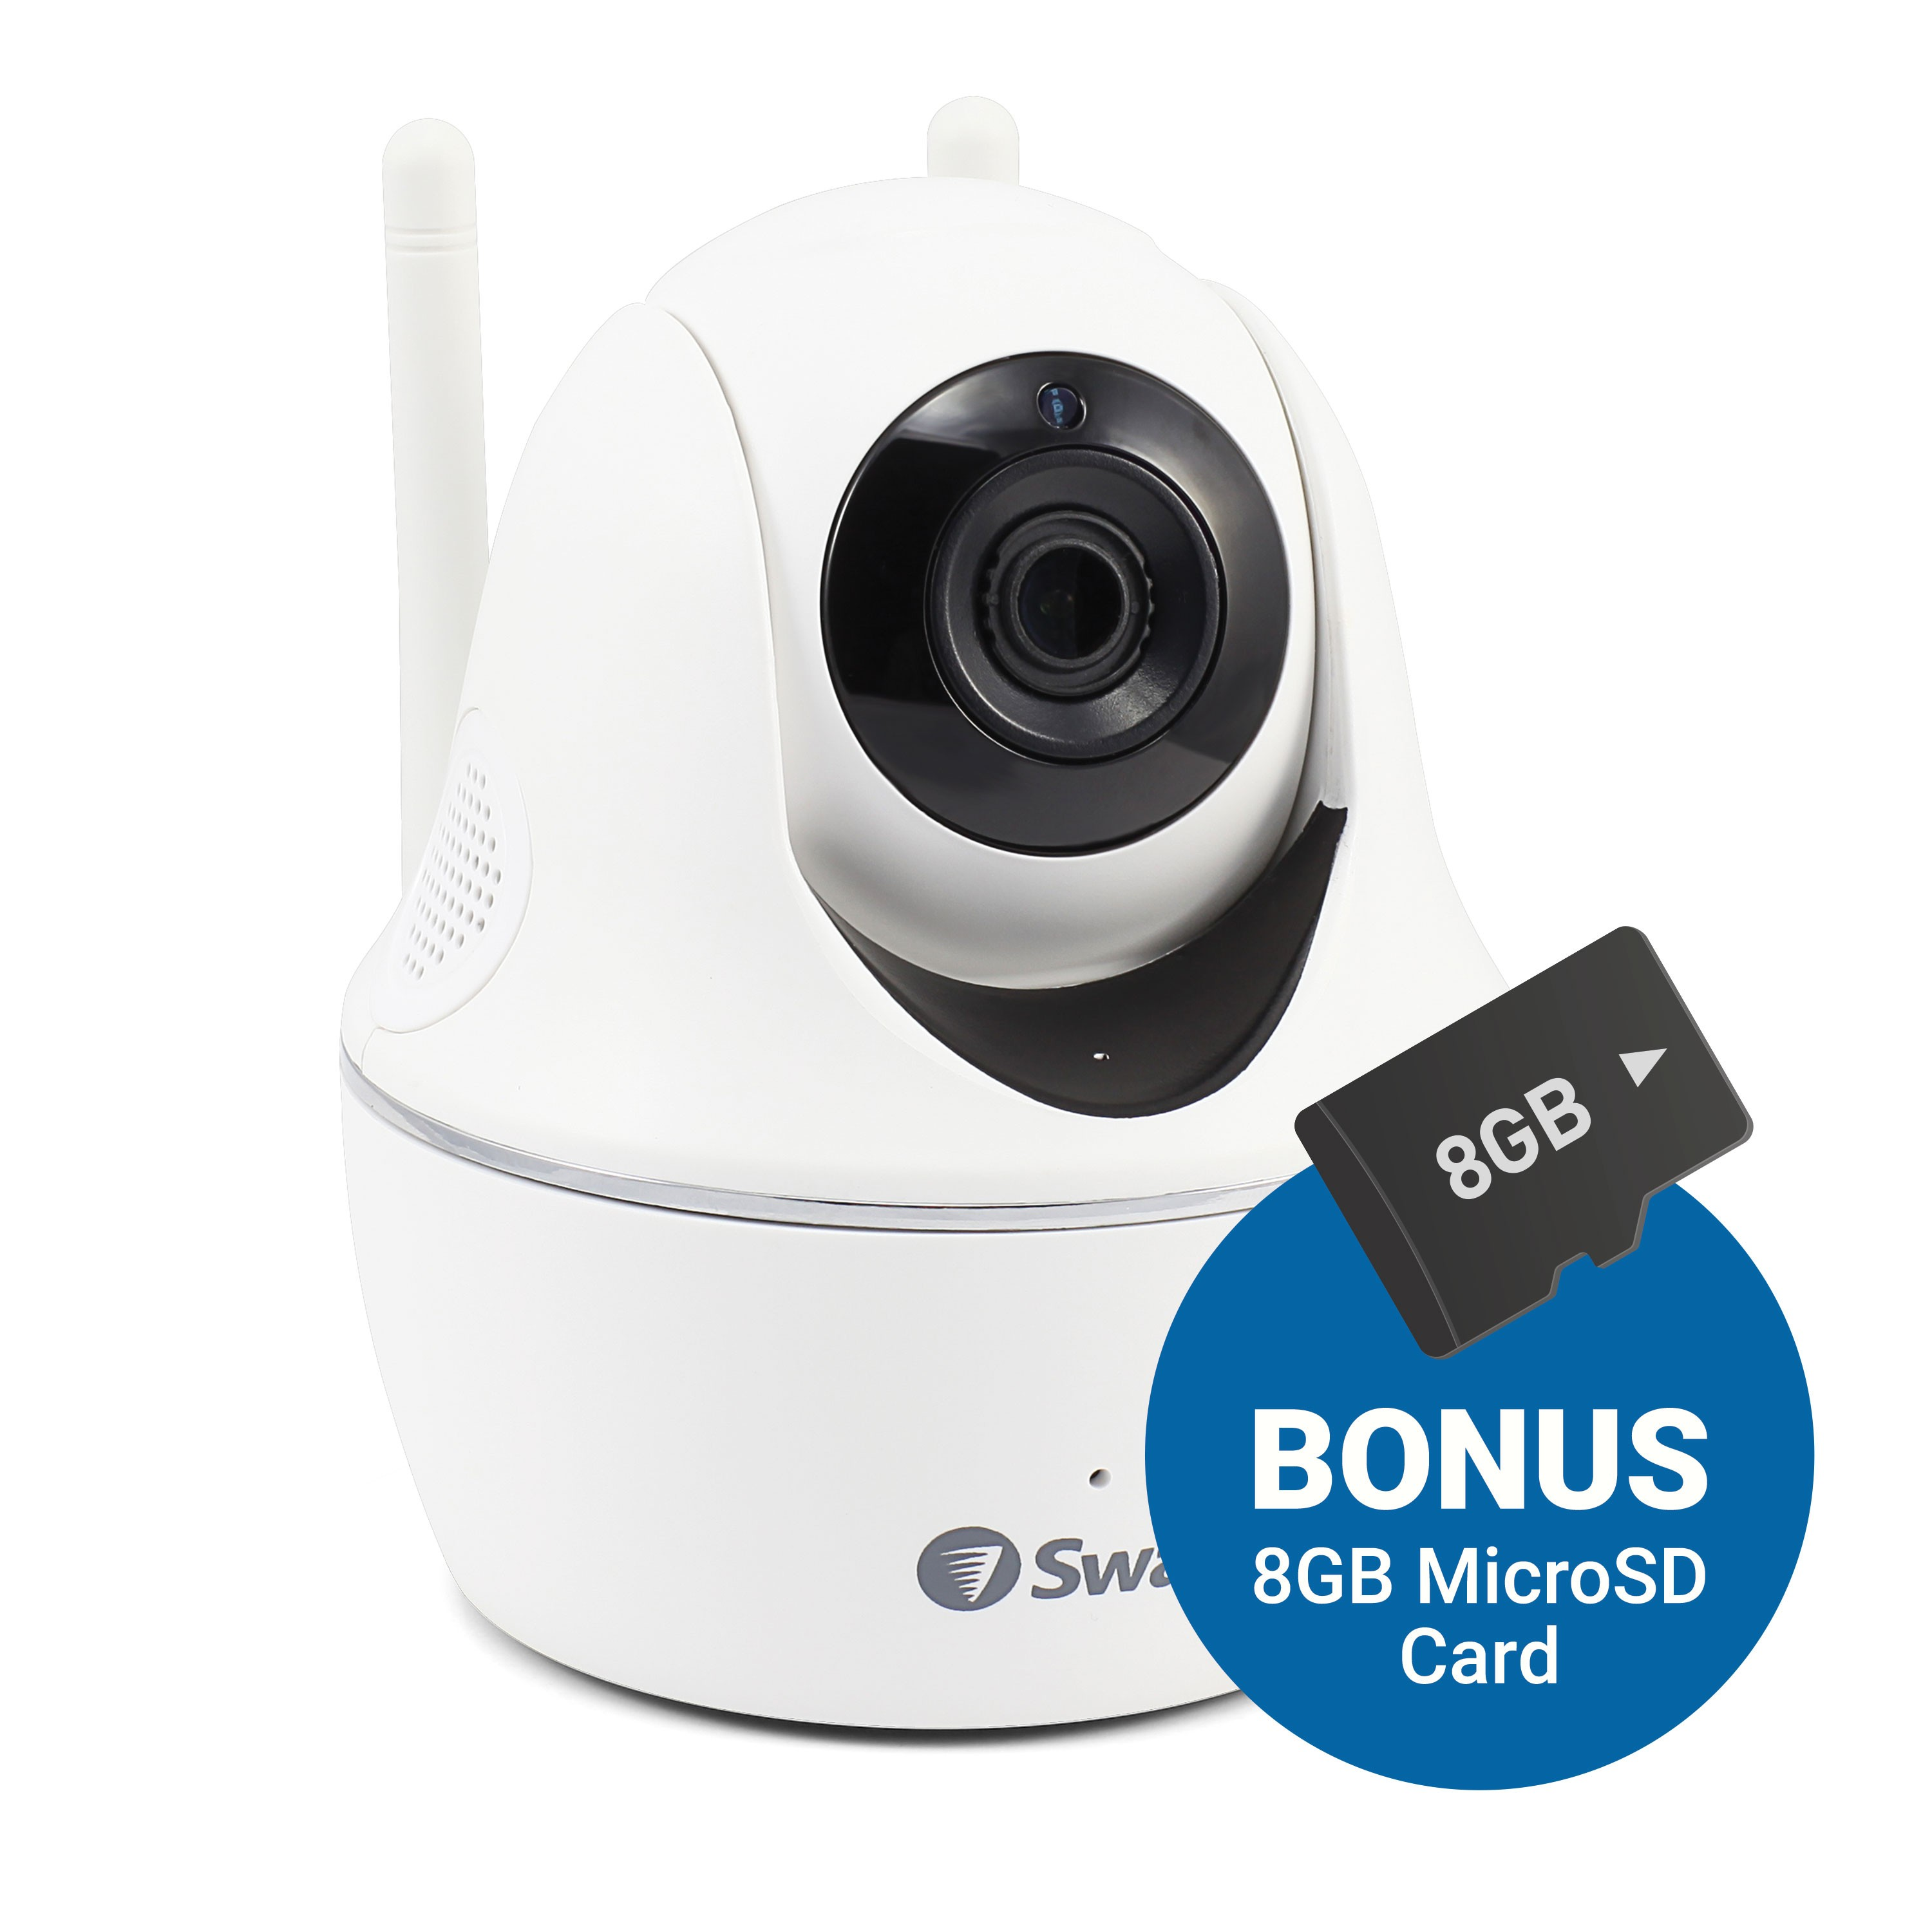 SWWHD-PTCAM8G Swann Wireless Pan & Tilt Security Camera: 1080p Full HD  Camera with Audio & Remote Control via App plus FREE 8GB Micro SD Card - PTCAM8G -